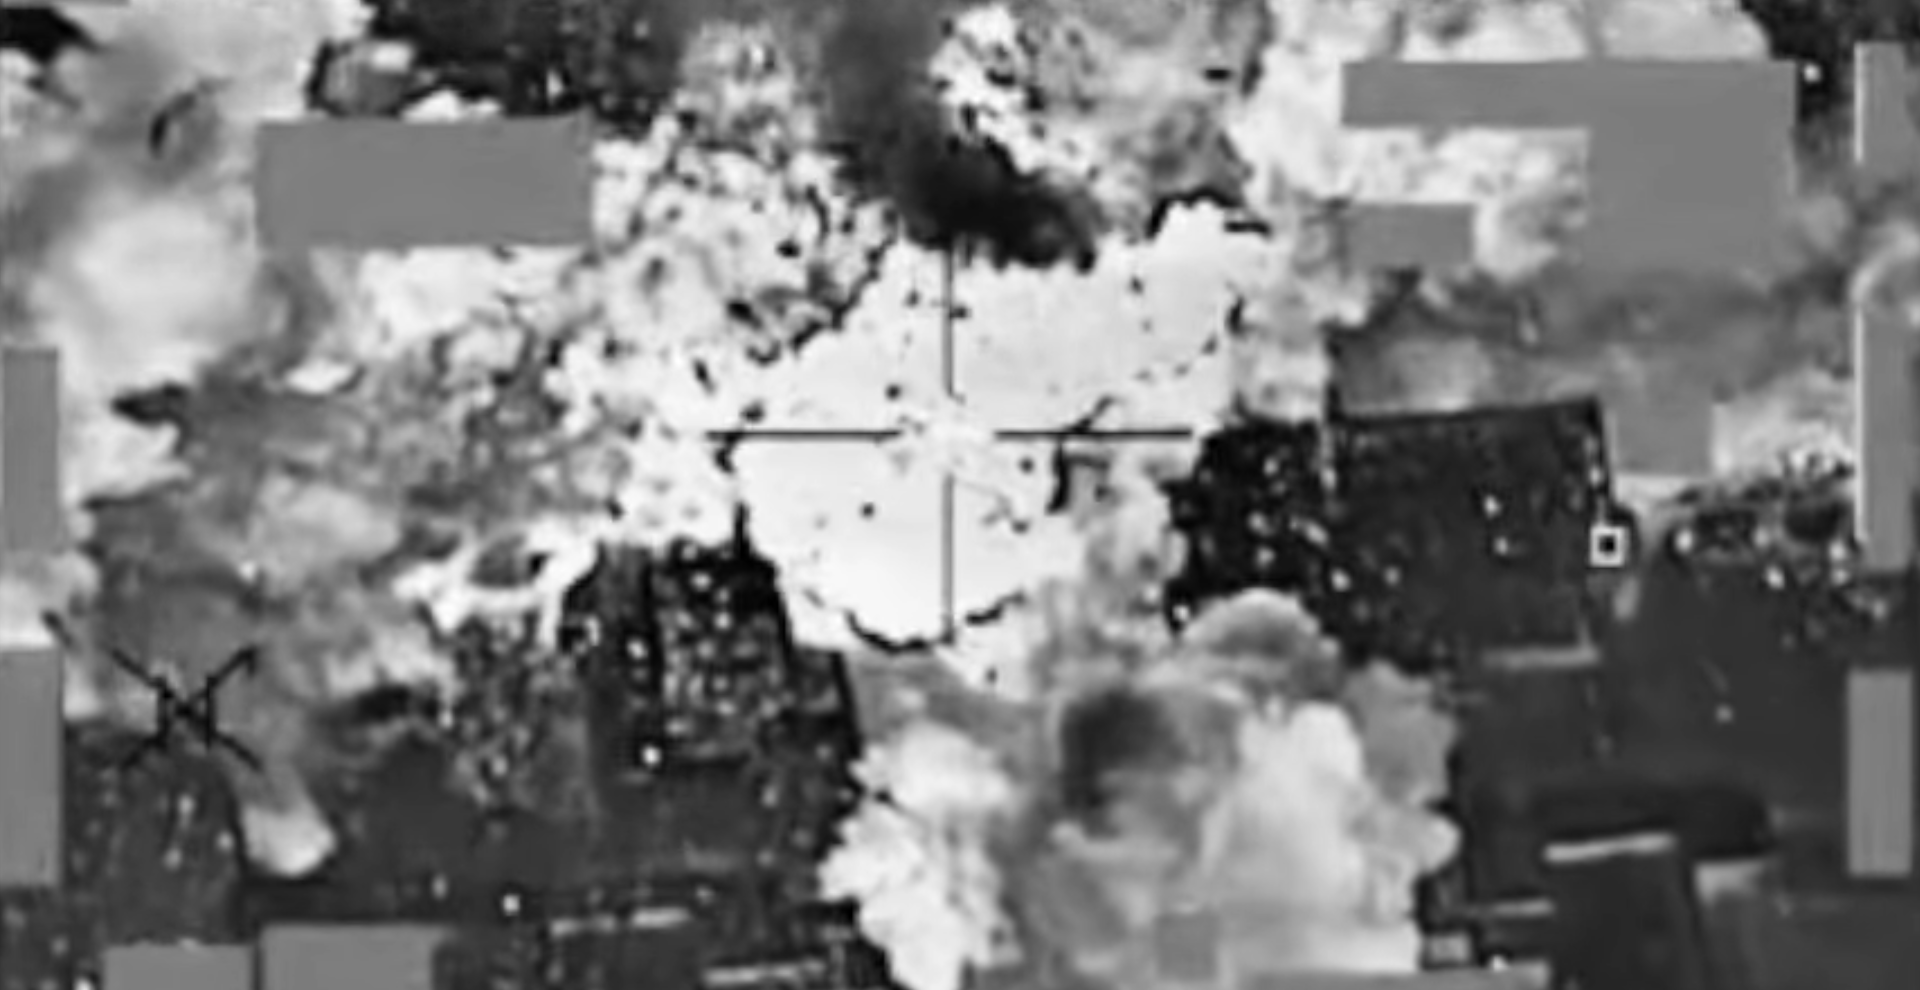 Pentagon Releases Video of US airstrike Destroying ISIS Cash Stockpile